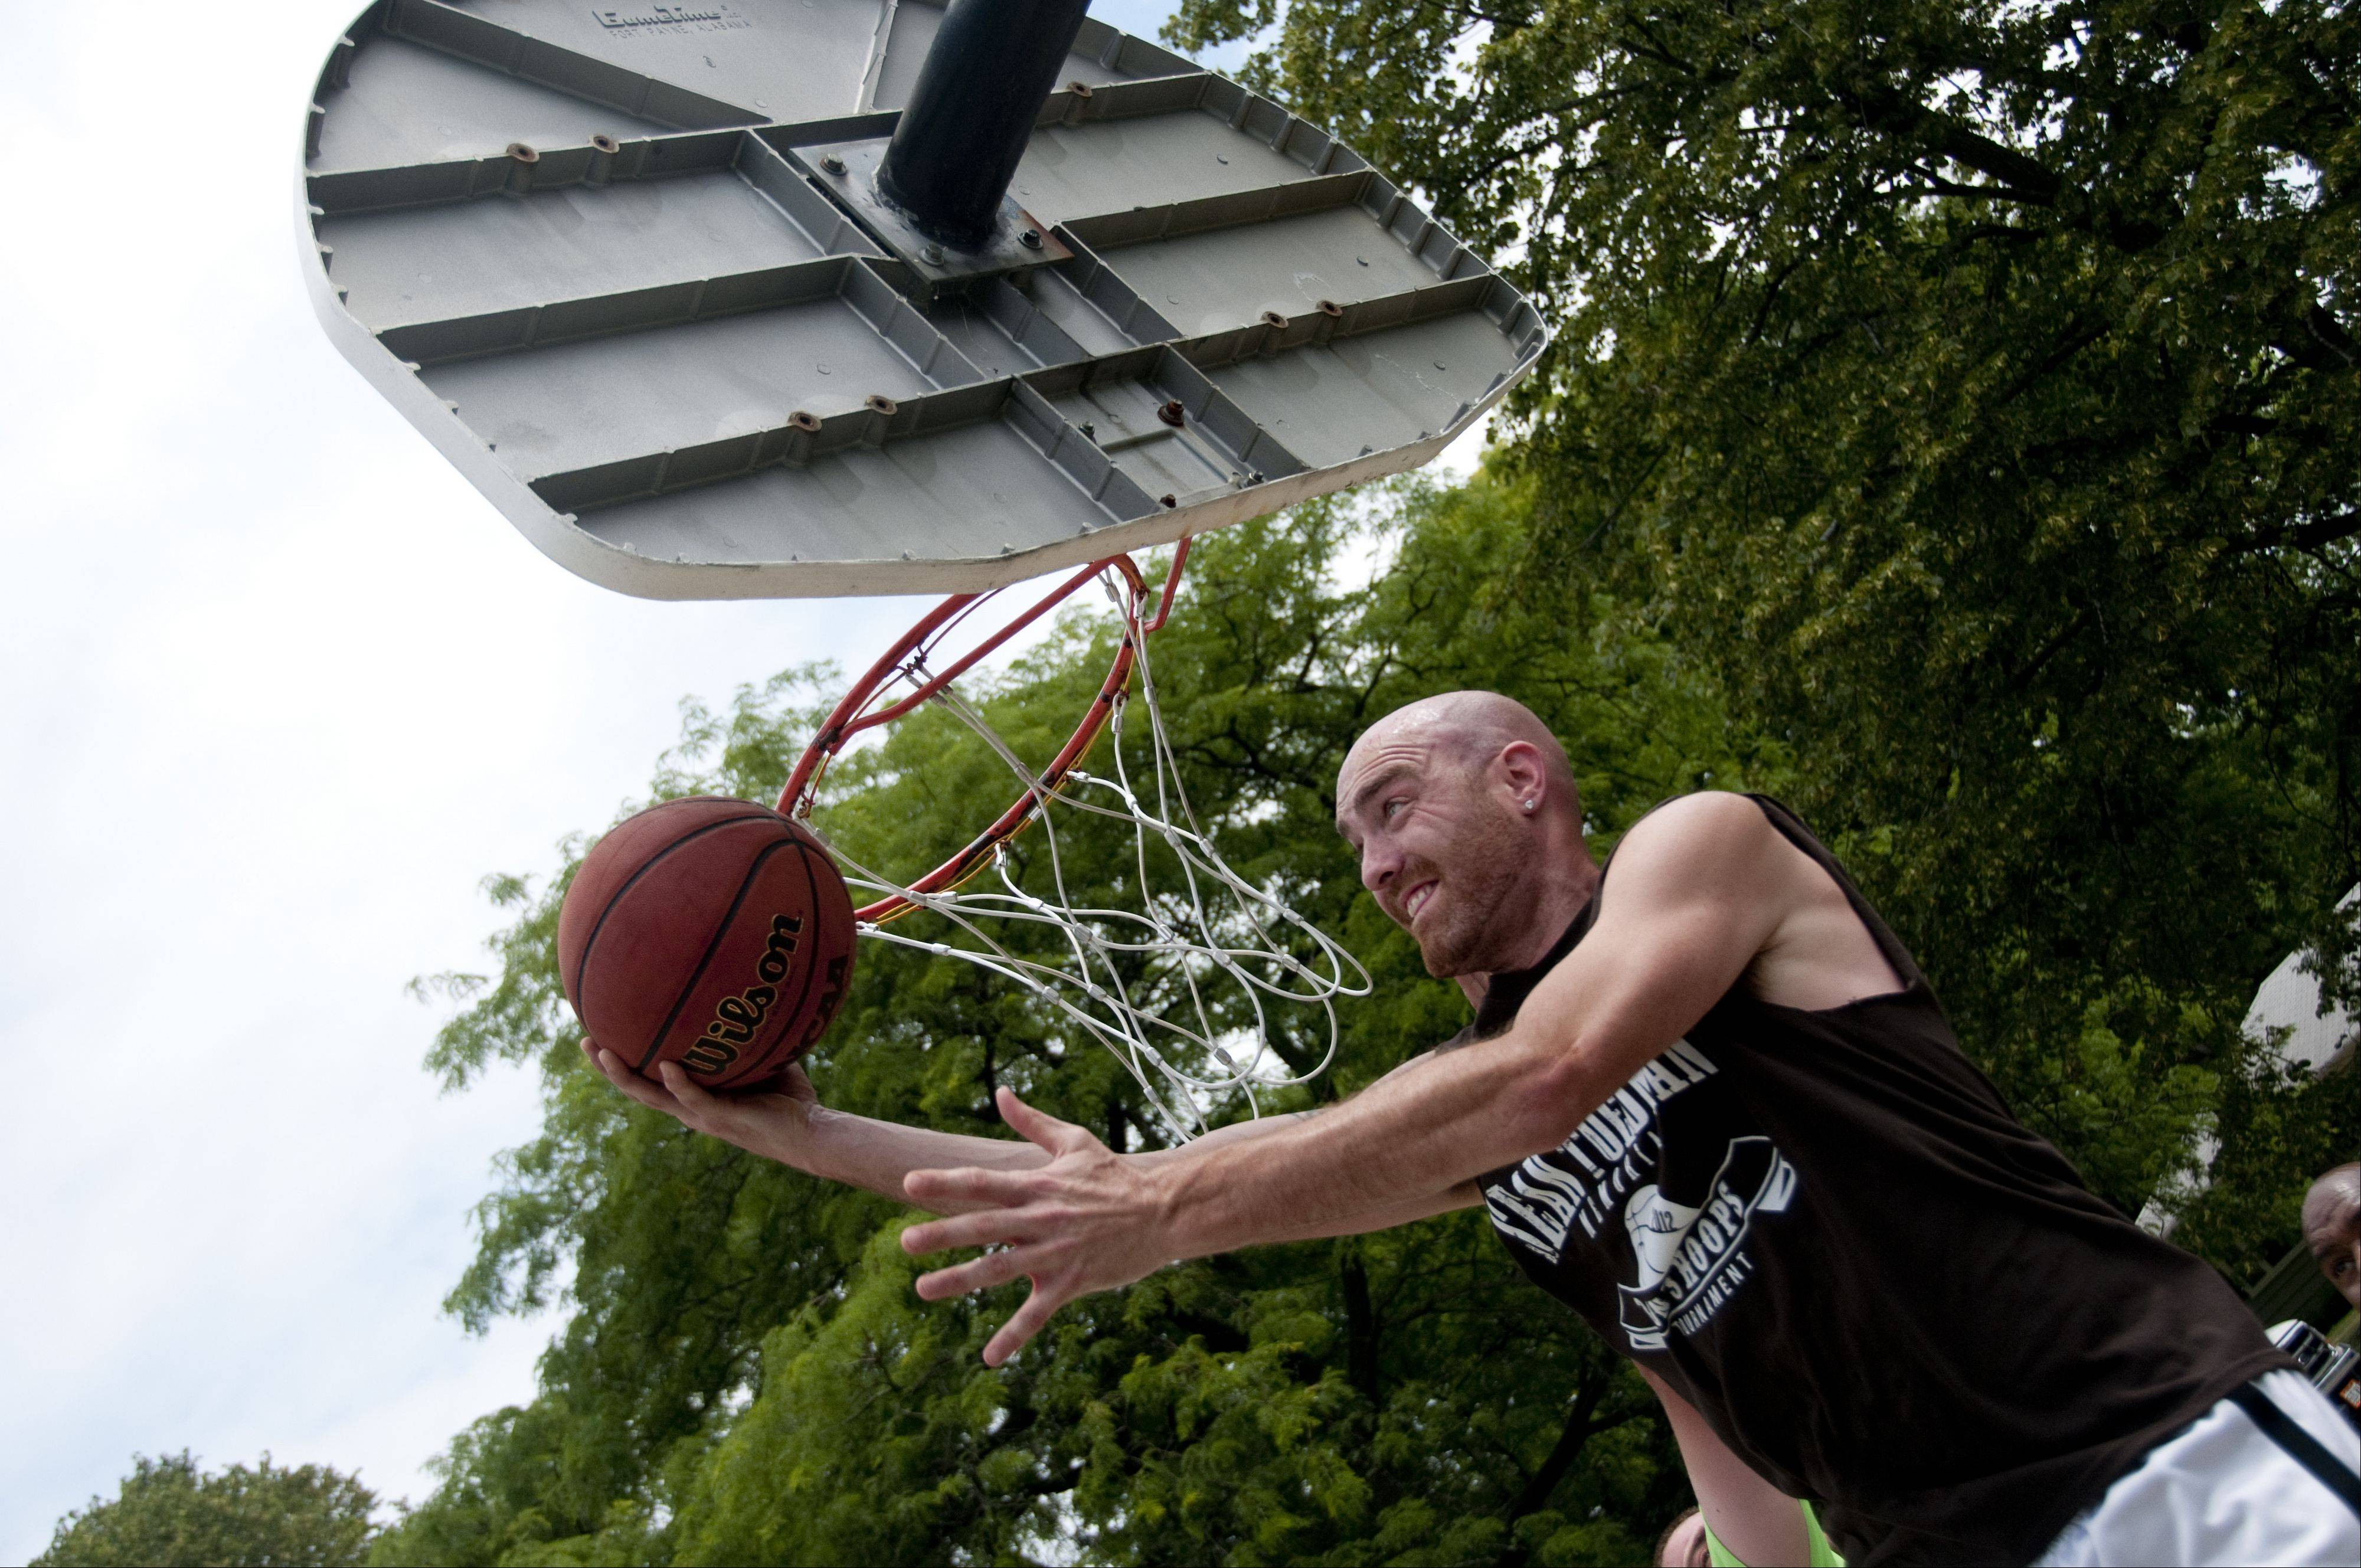 Mike McKibben, a Lake in the Hills resident, goes for a layup during the second annual Sean Toedman Memorial 3-on-3 Basketball Tournament at Lions Park in East Dundee.